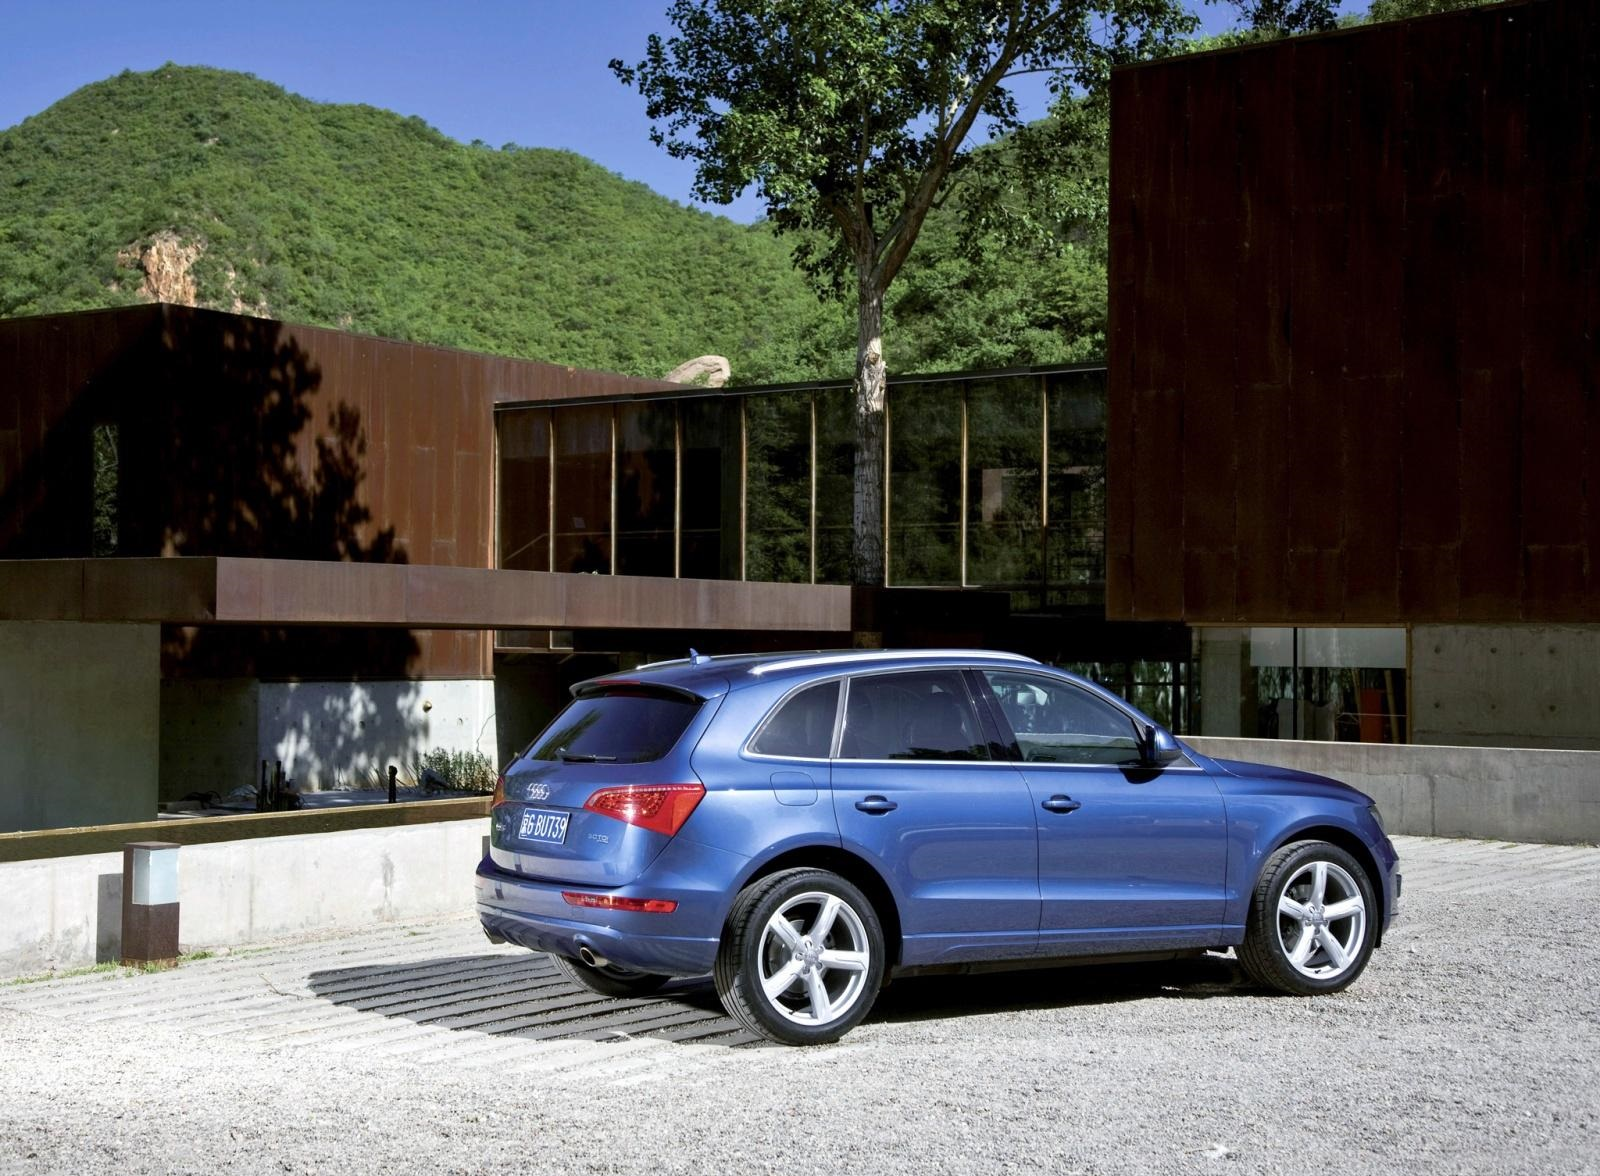 audi q5 3 0 tdi quattro car 17 wallpaper 1600x1176 fondo de pantalla 1674. Black Bedroom Furniture Sets. Home Design Ideas